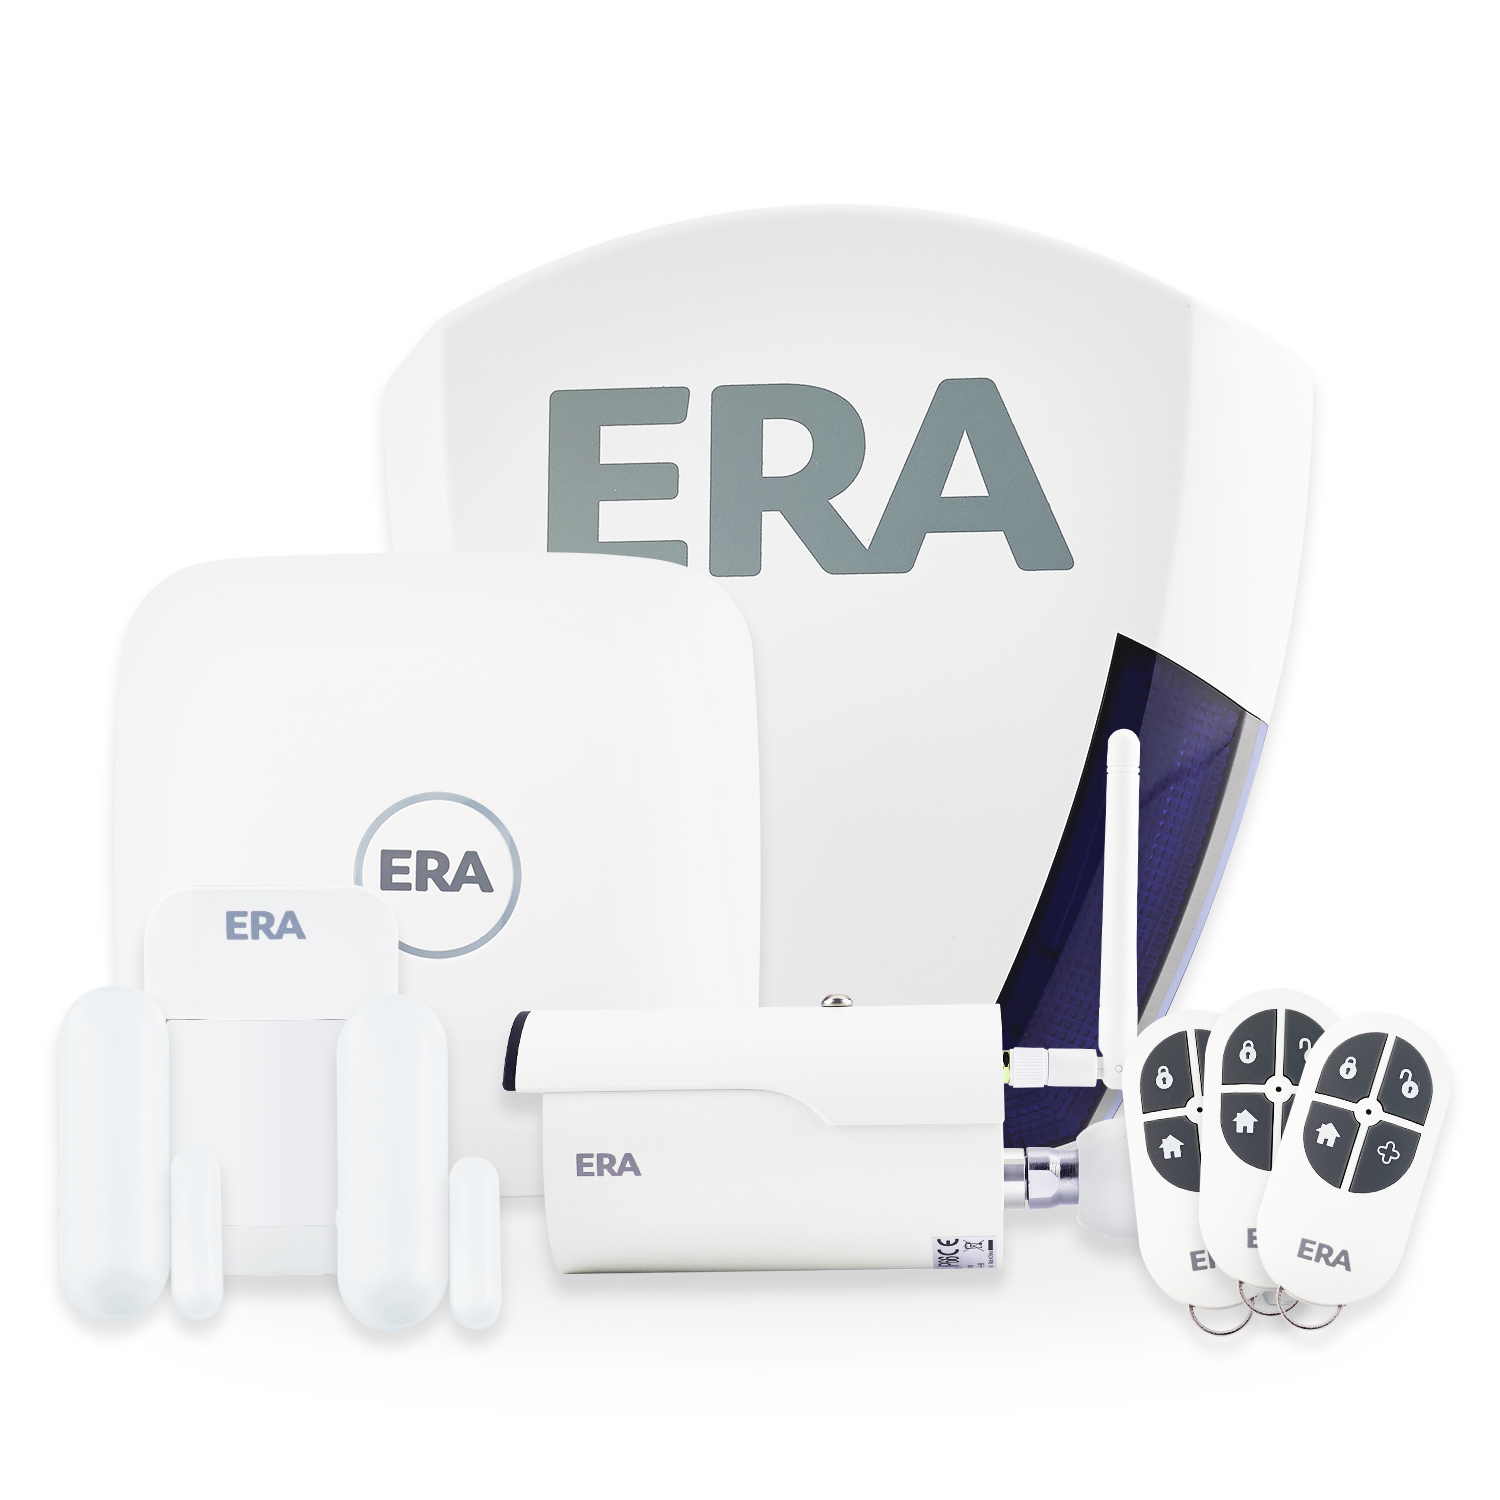 ERA Protect Defender Smart Alarm Kit with Live Siren & External HD Camera